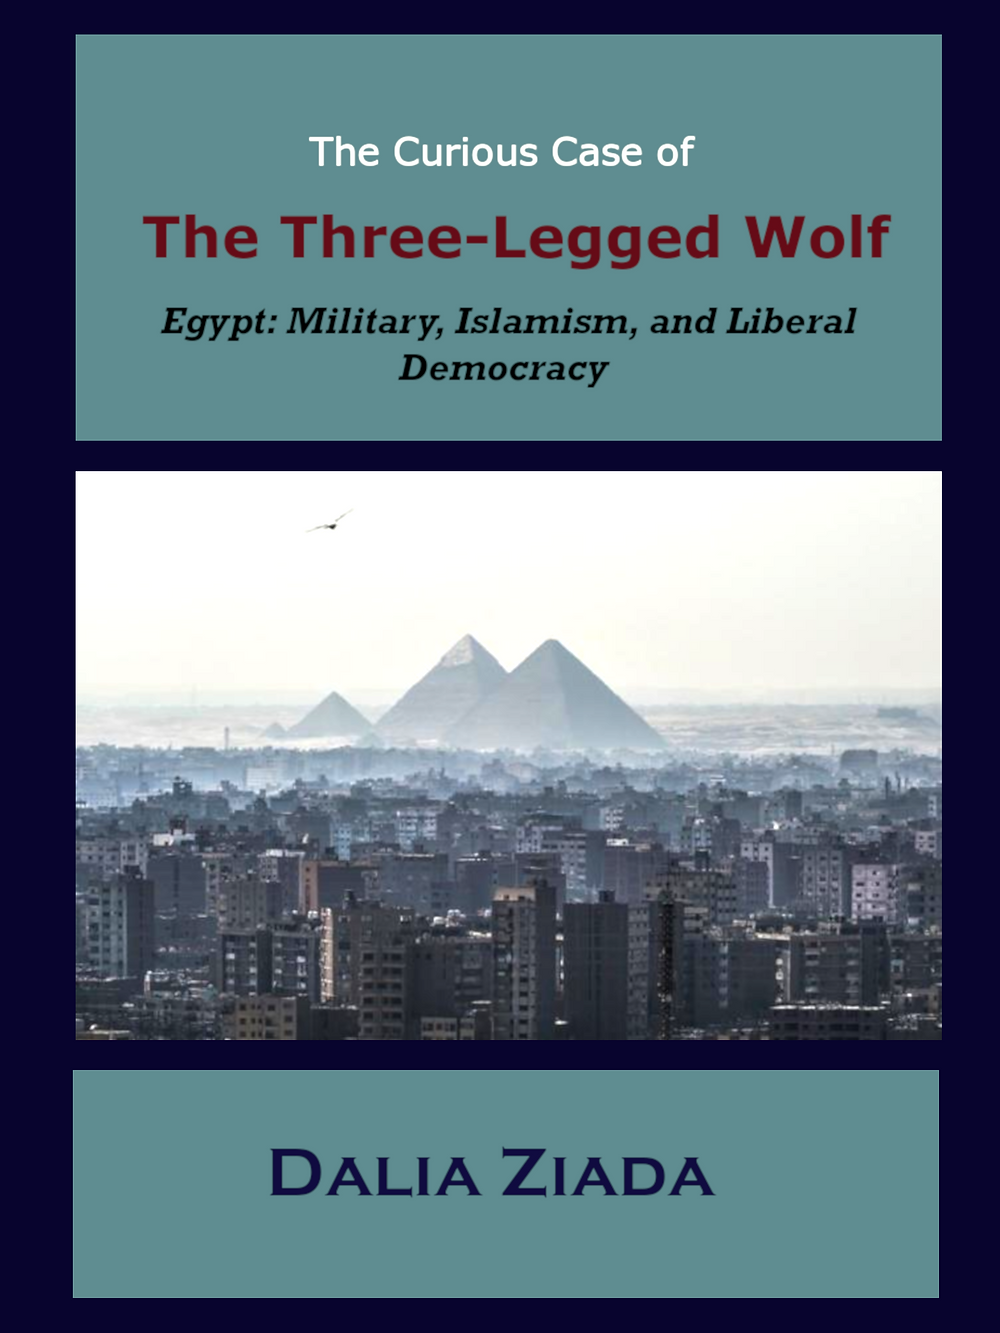 Three-Legged Wolf Egypt Dalia Ziada Book